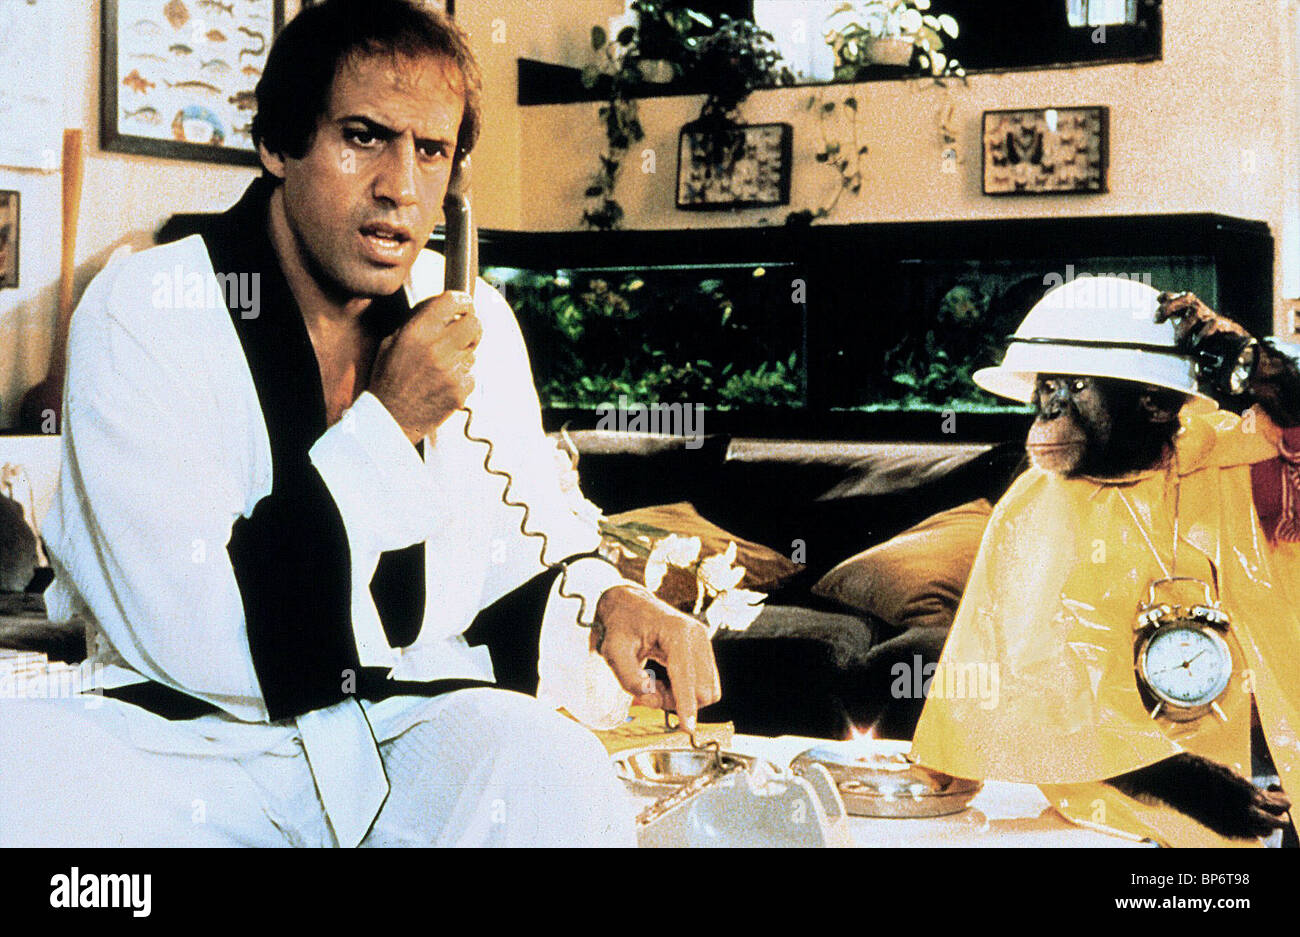 Adriano Celentano Chimp Bingo Bongo 1982 Stock Photo 30883588